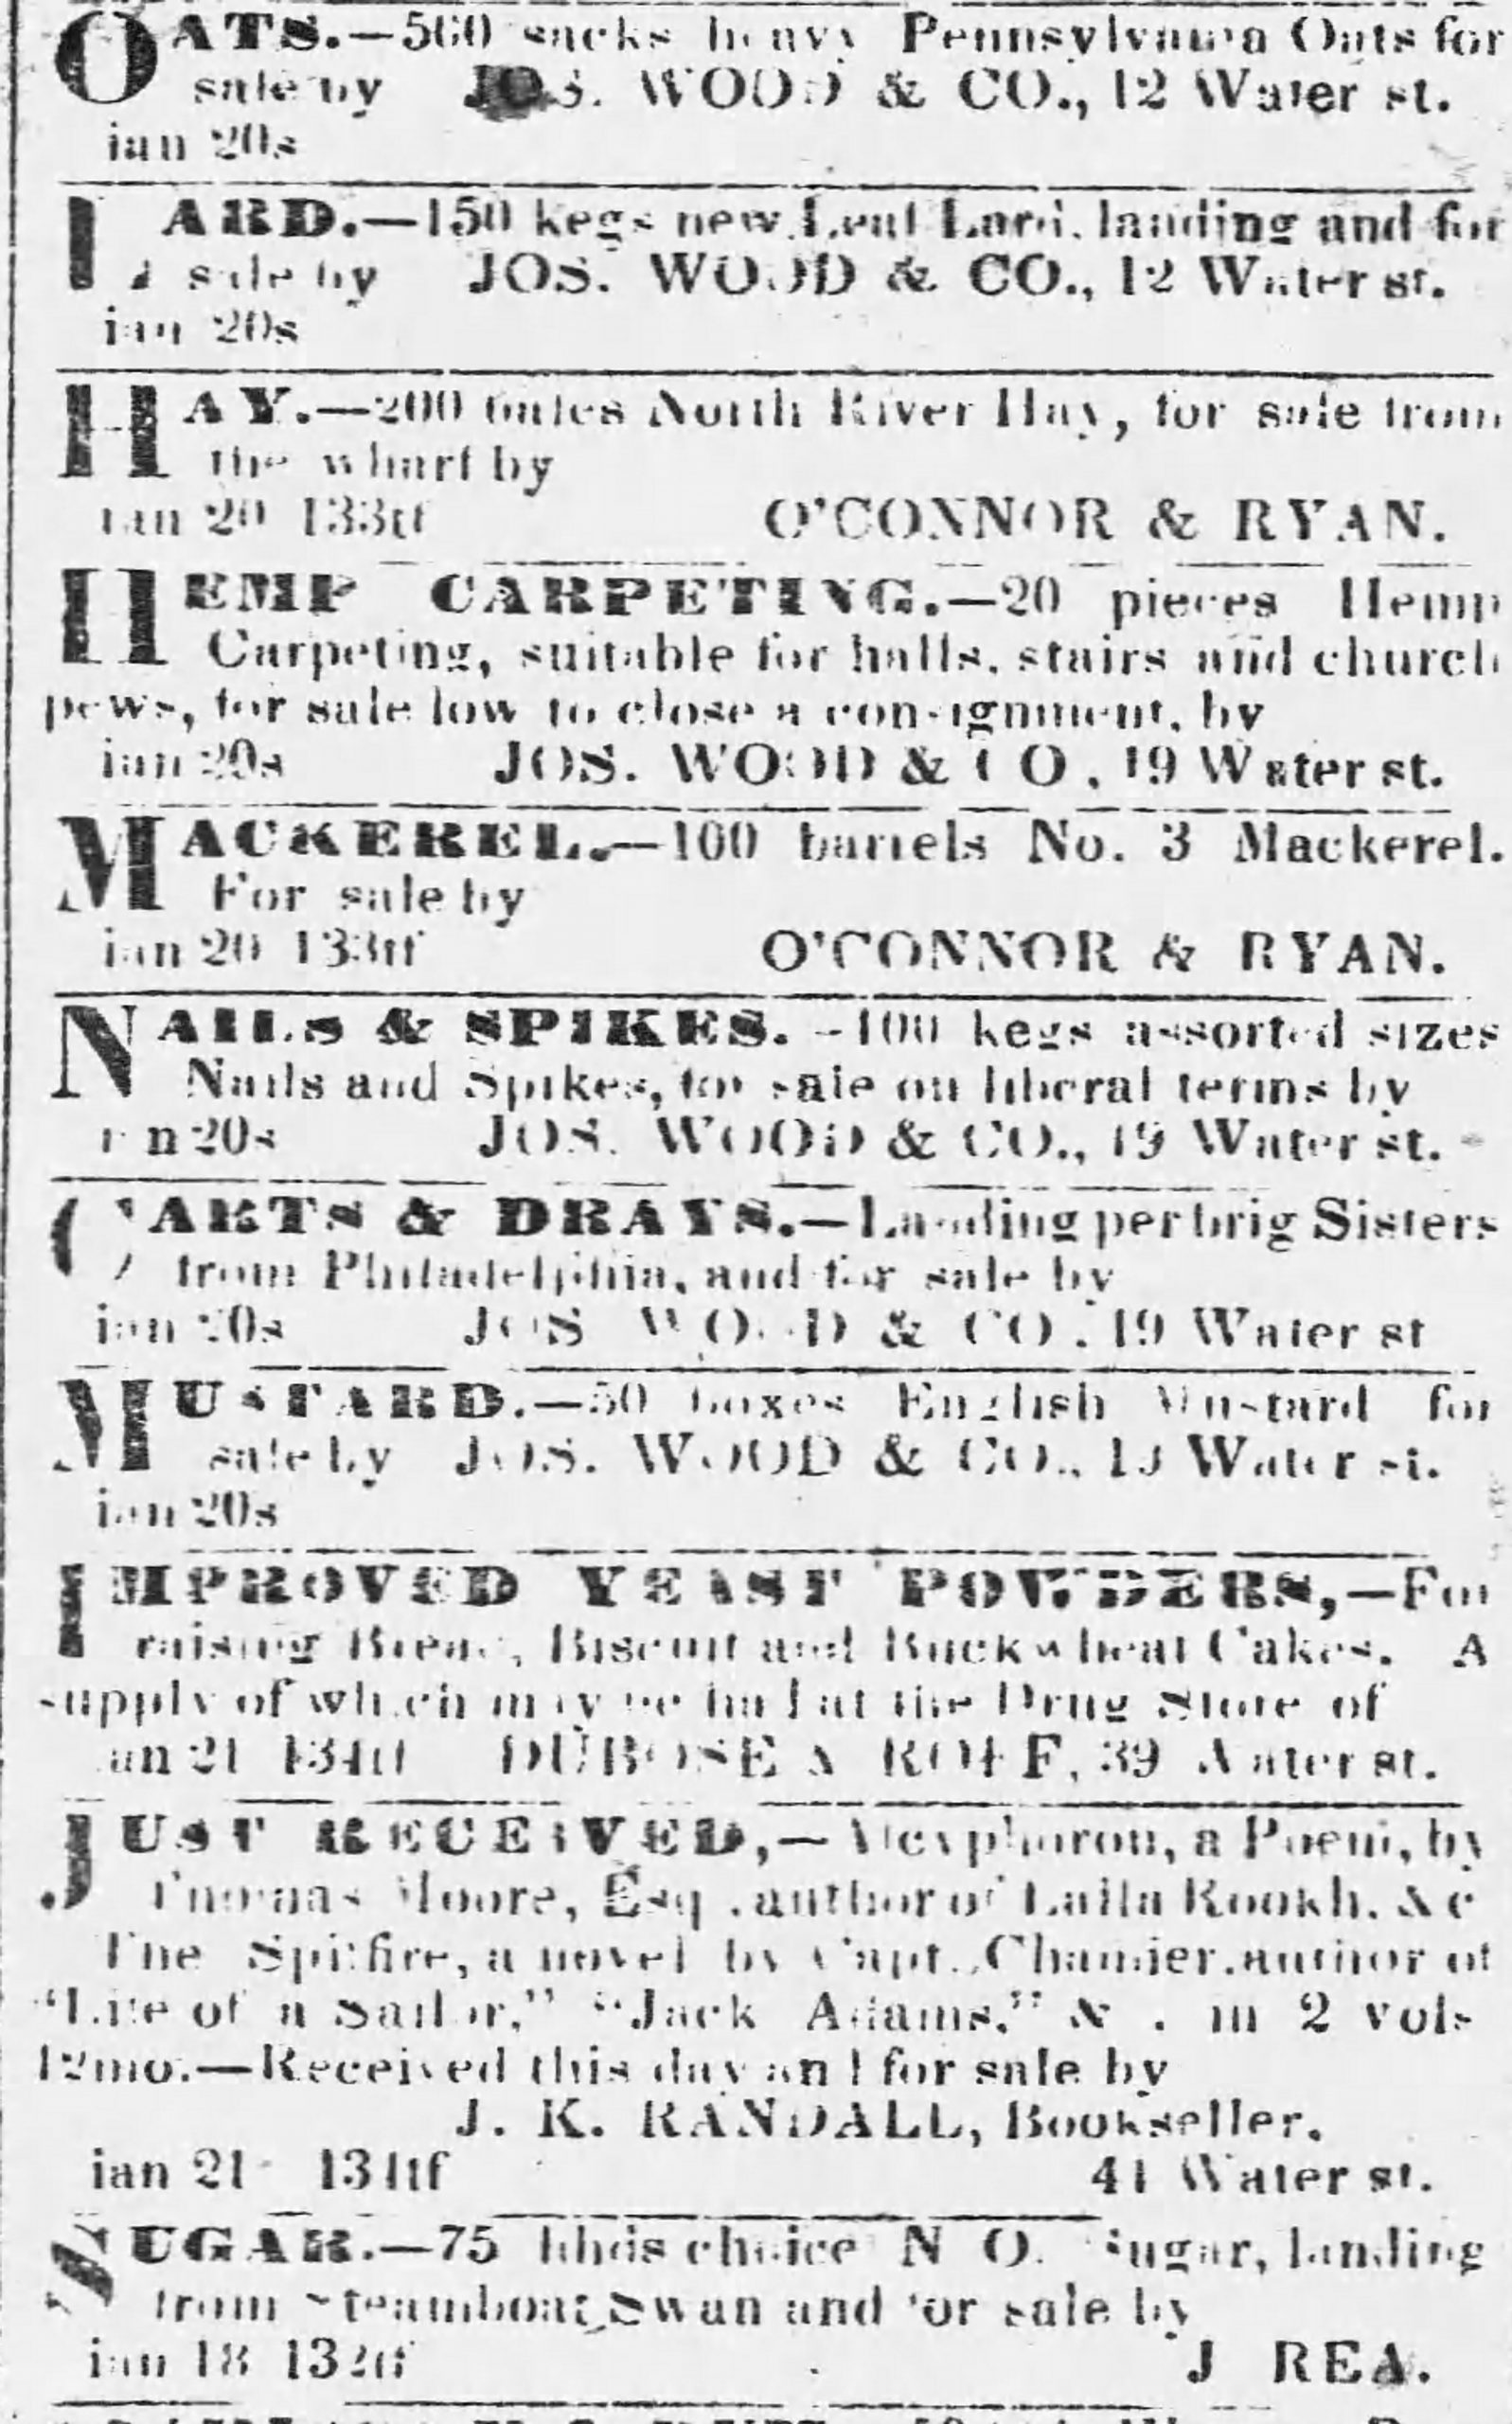 PATRON – Legal notices – names Hawkins, Trott, Hart, Anderson, Post, Kibby and more from 1839